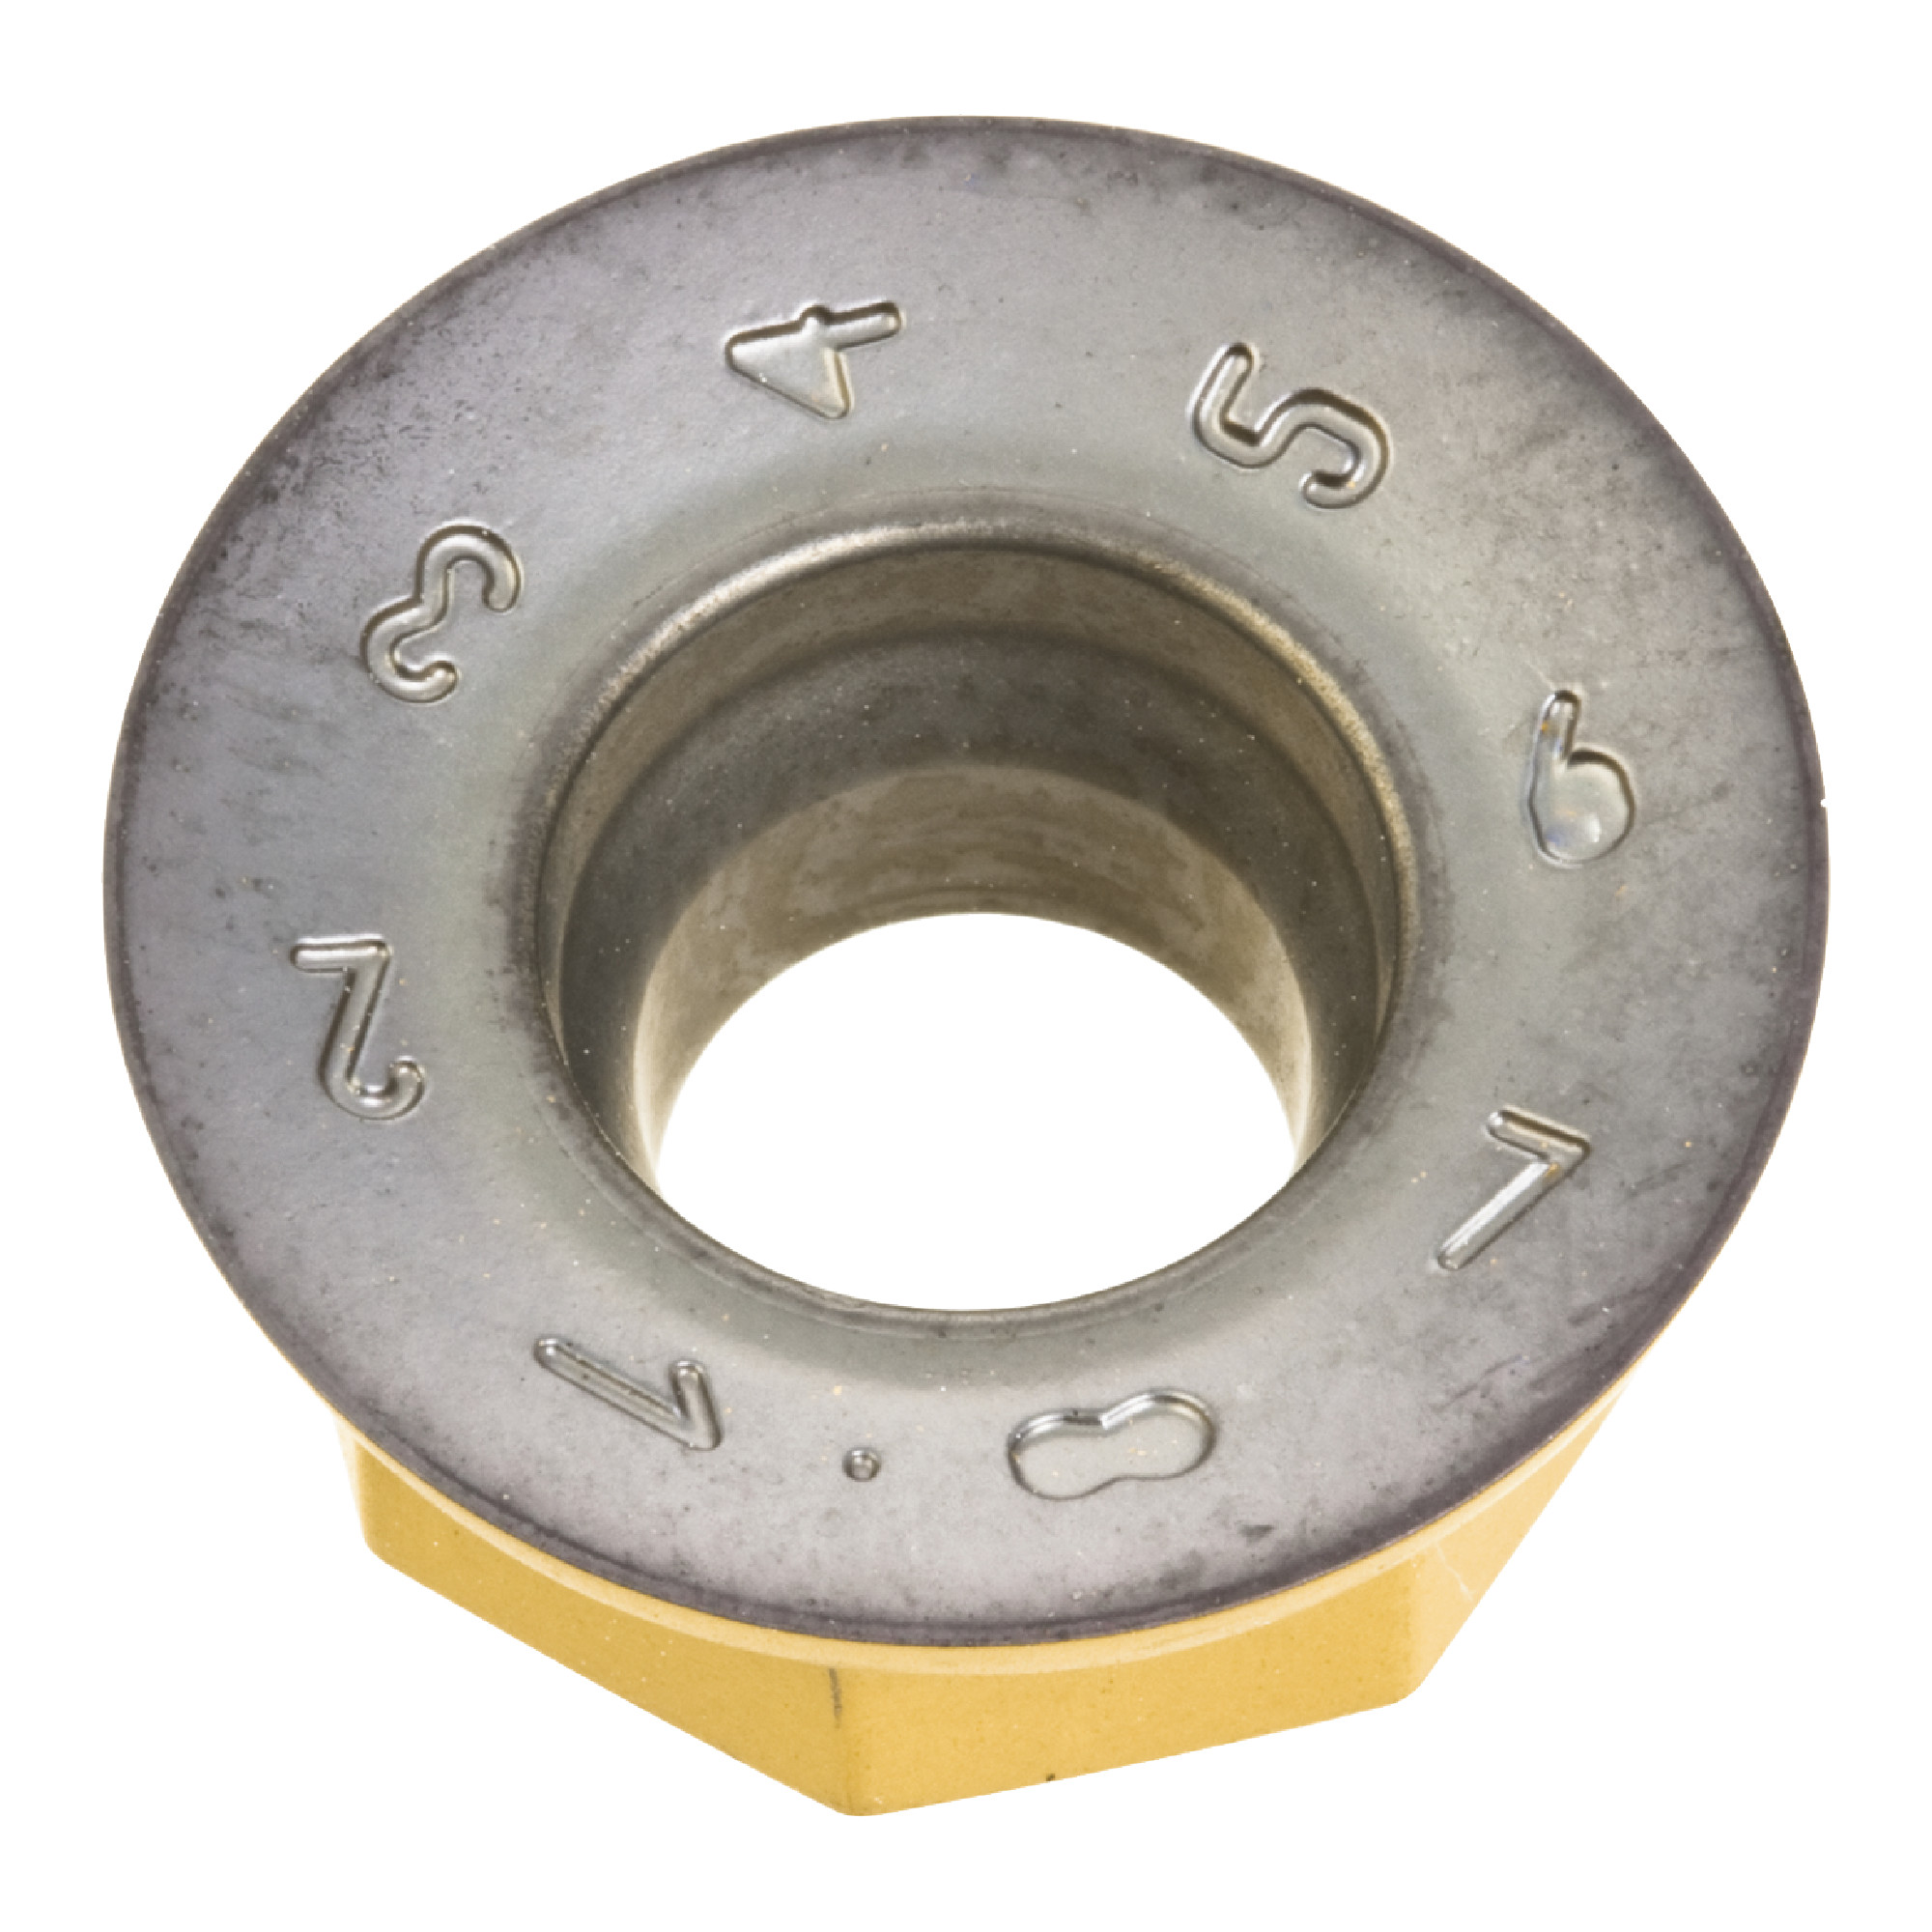 ISCAR - RXMT 1607N IC830 Round / INDEXABLE Carbide MILLING INSERT